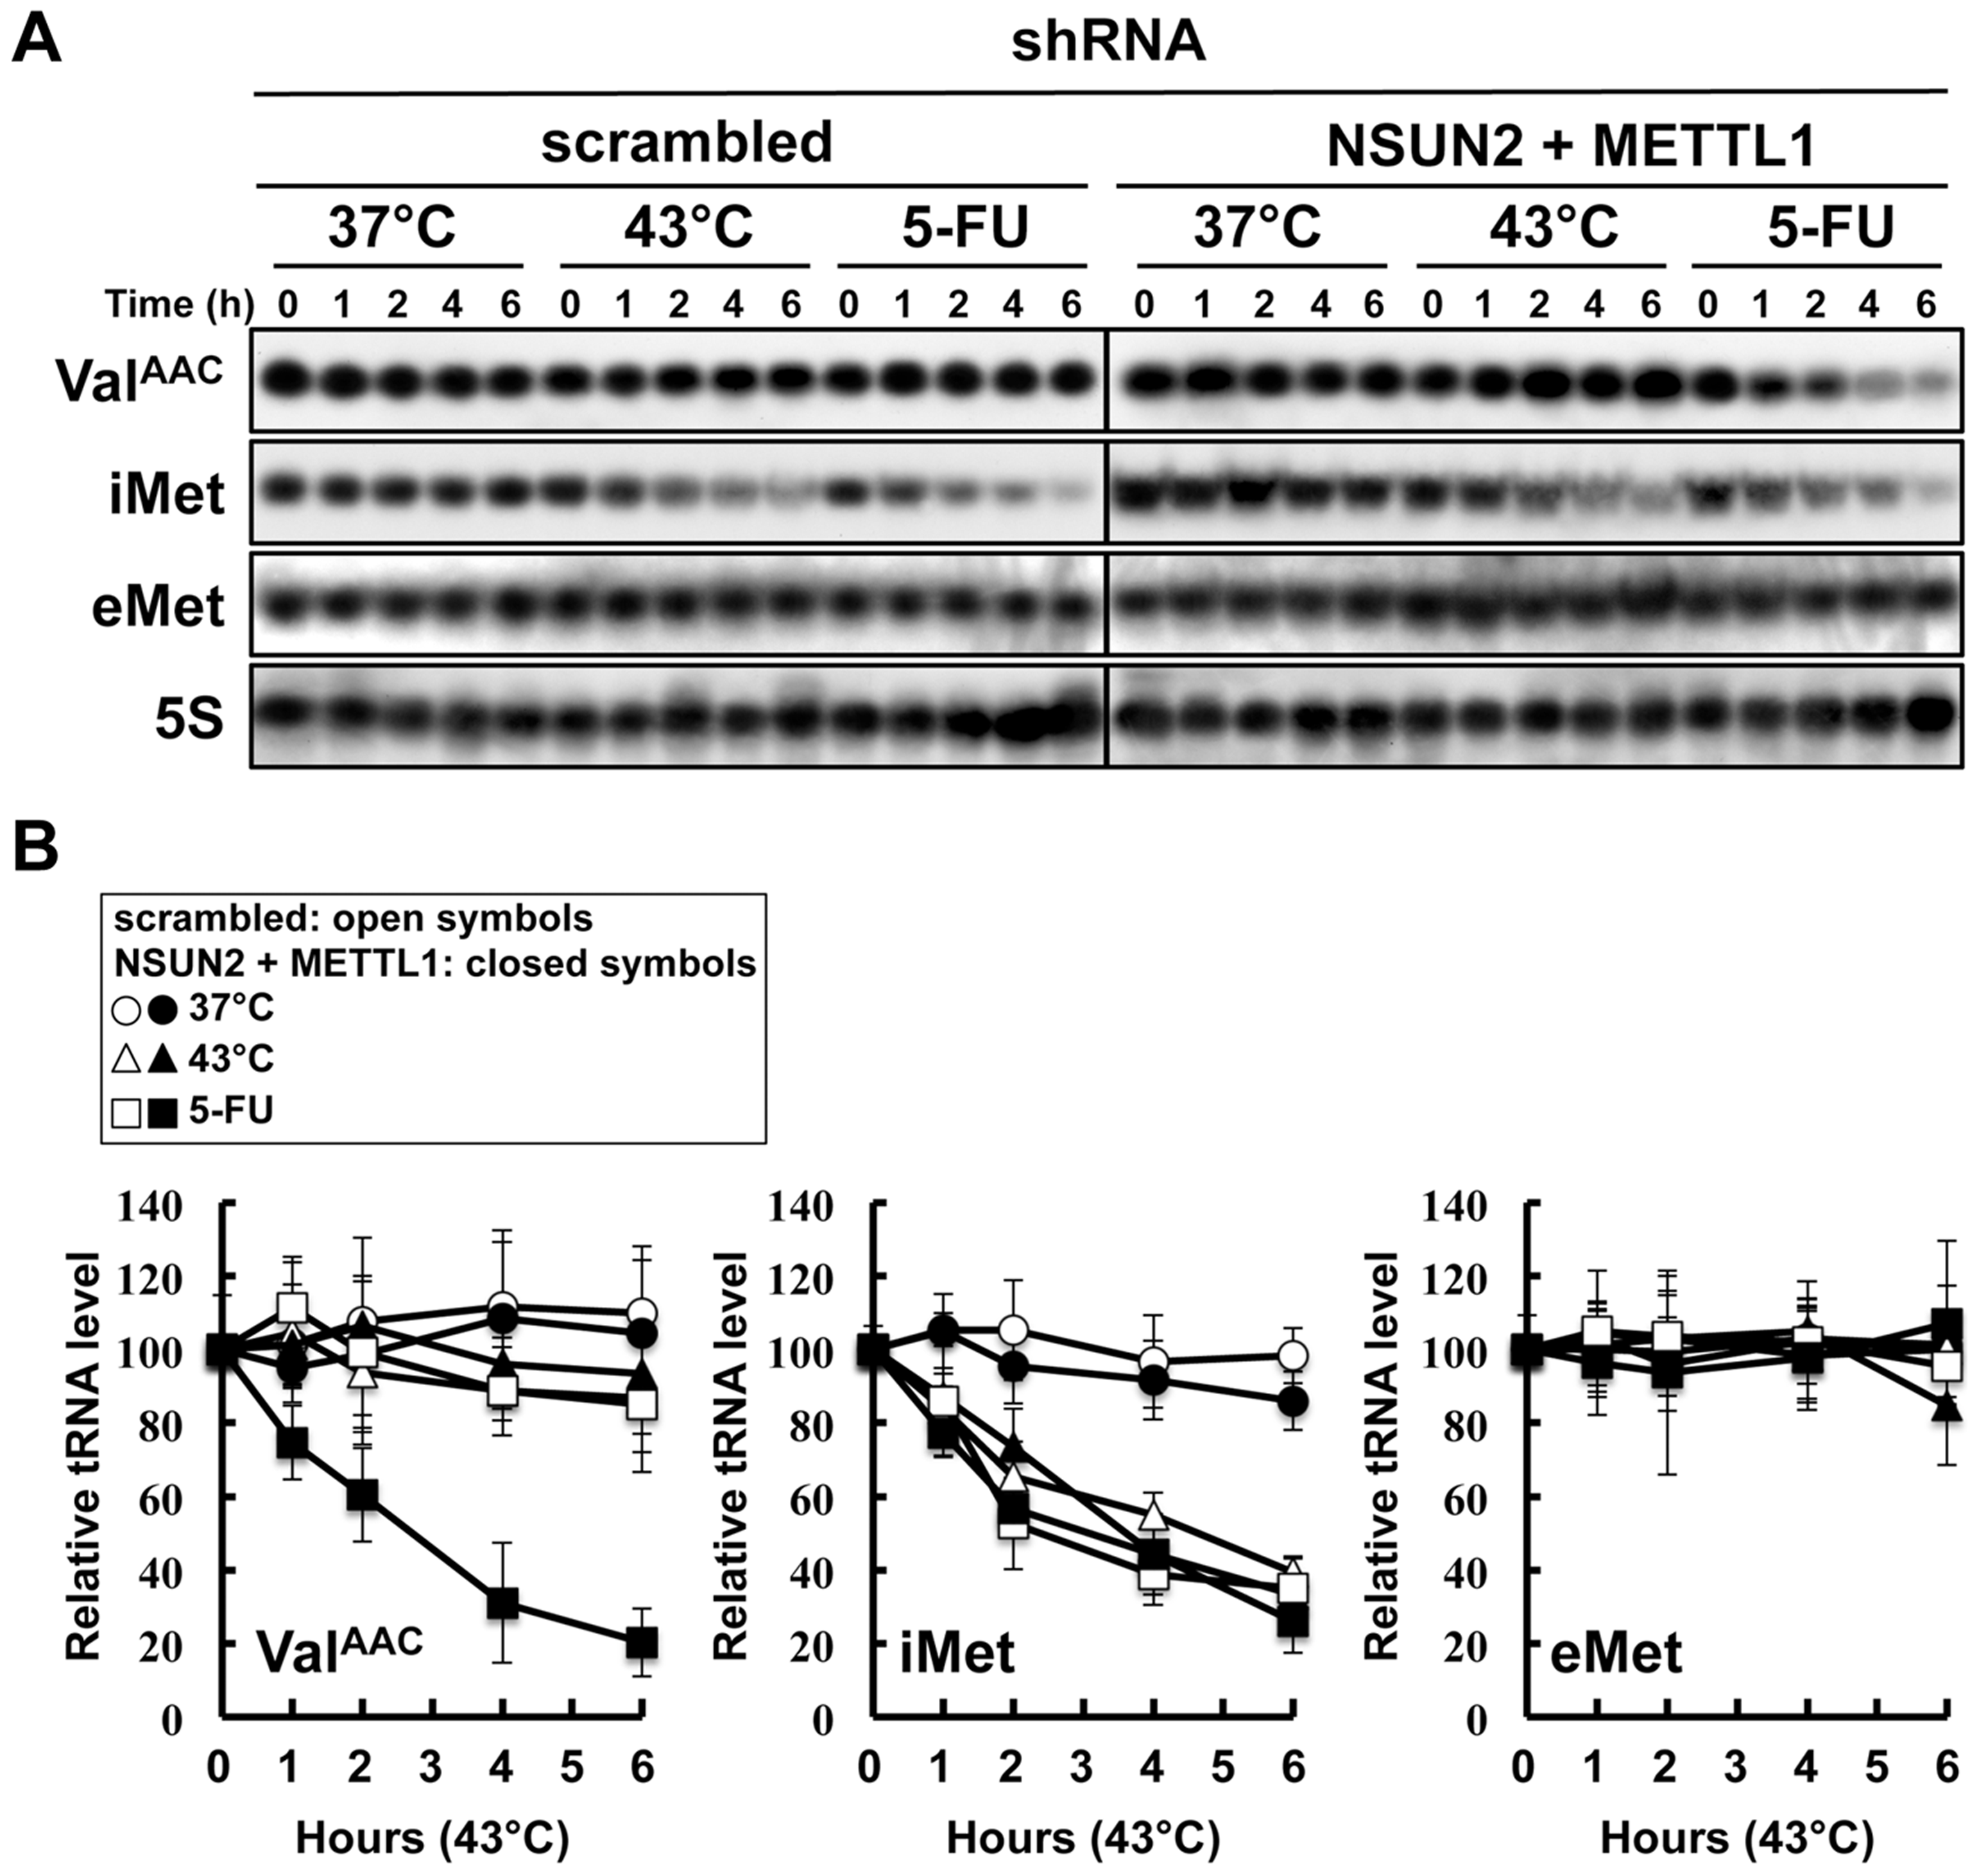 Degradation of tRNAs in HeLa cells treated with heat stress or 5-FU.